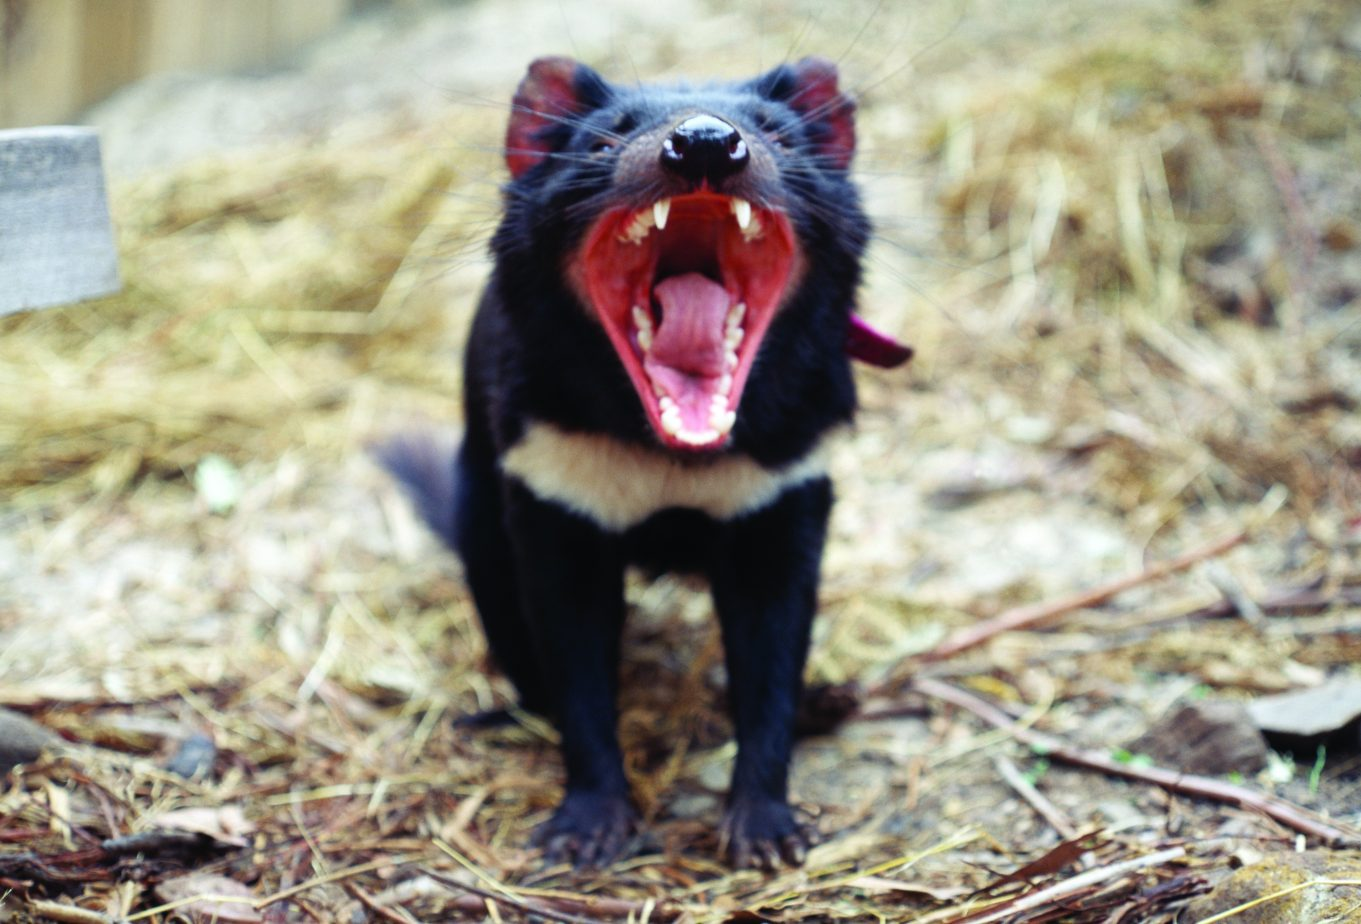 Tasmanian Devils Evolving Genetic Resistance to Cancer Threatening Species